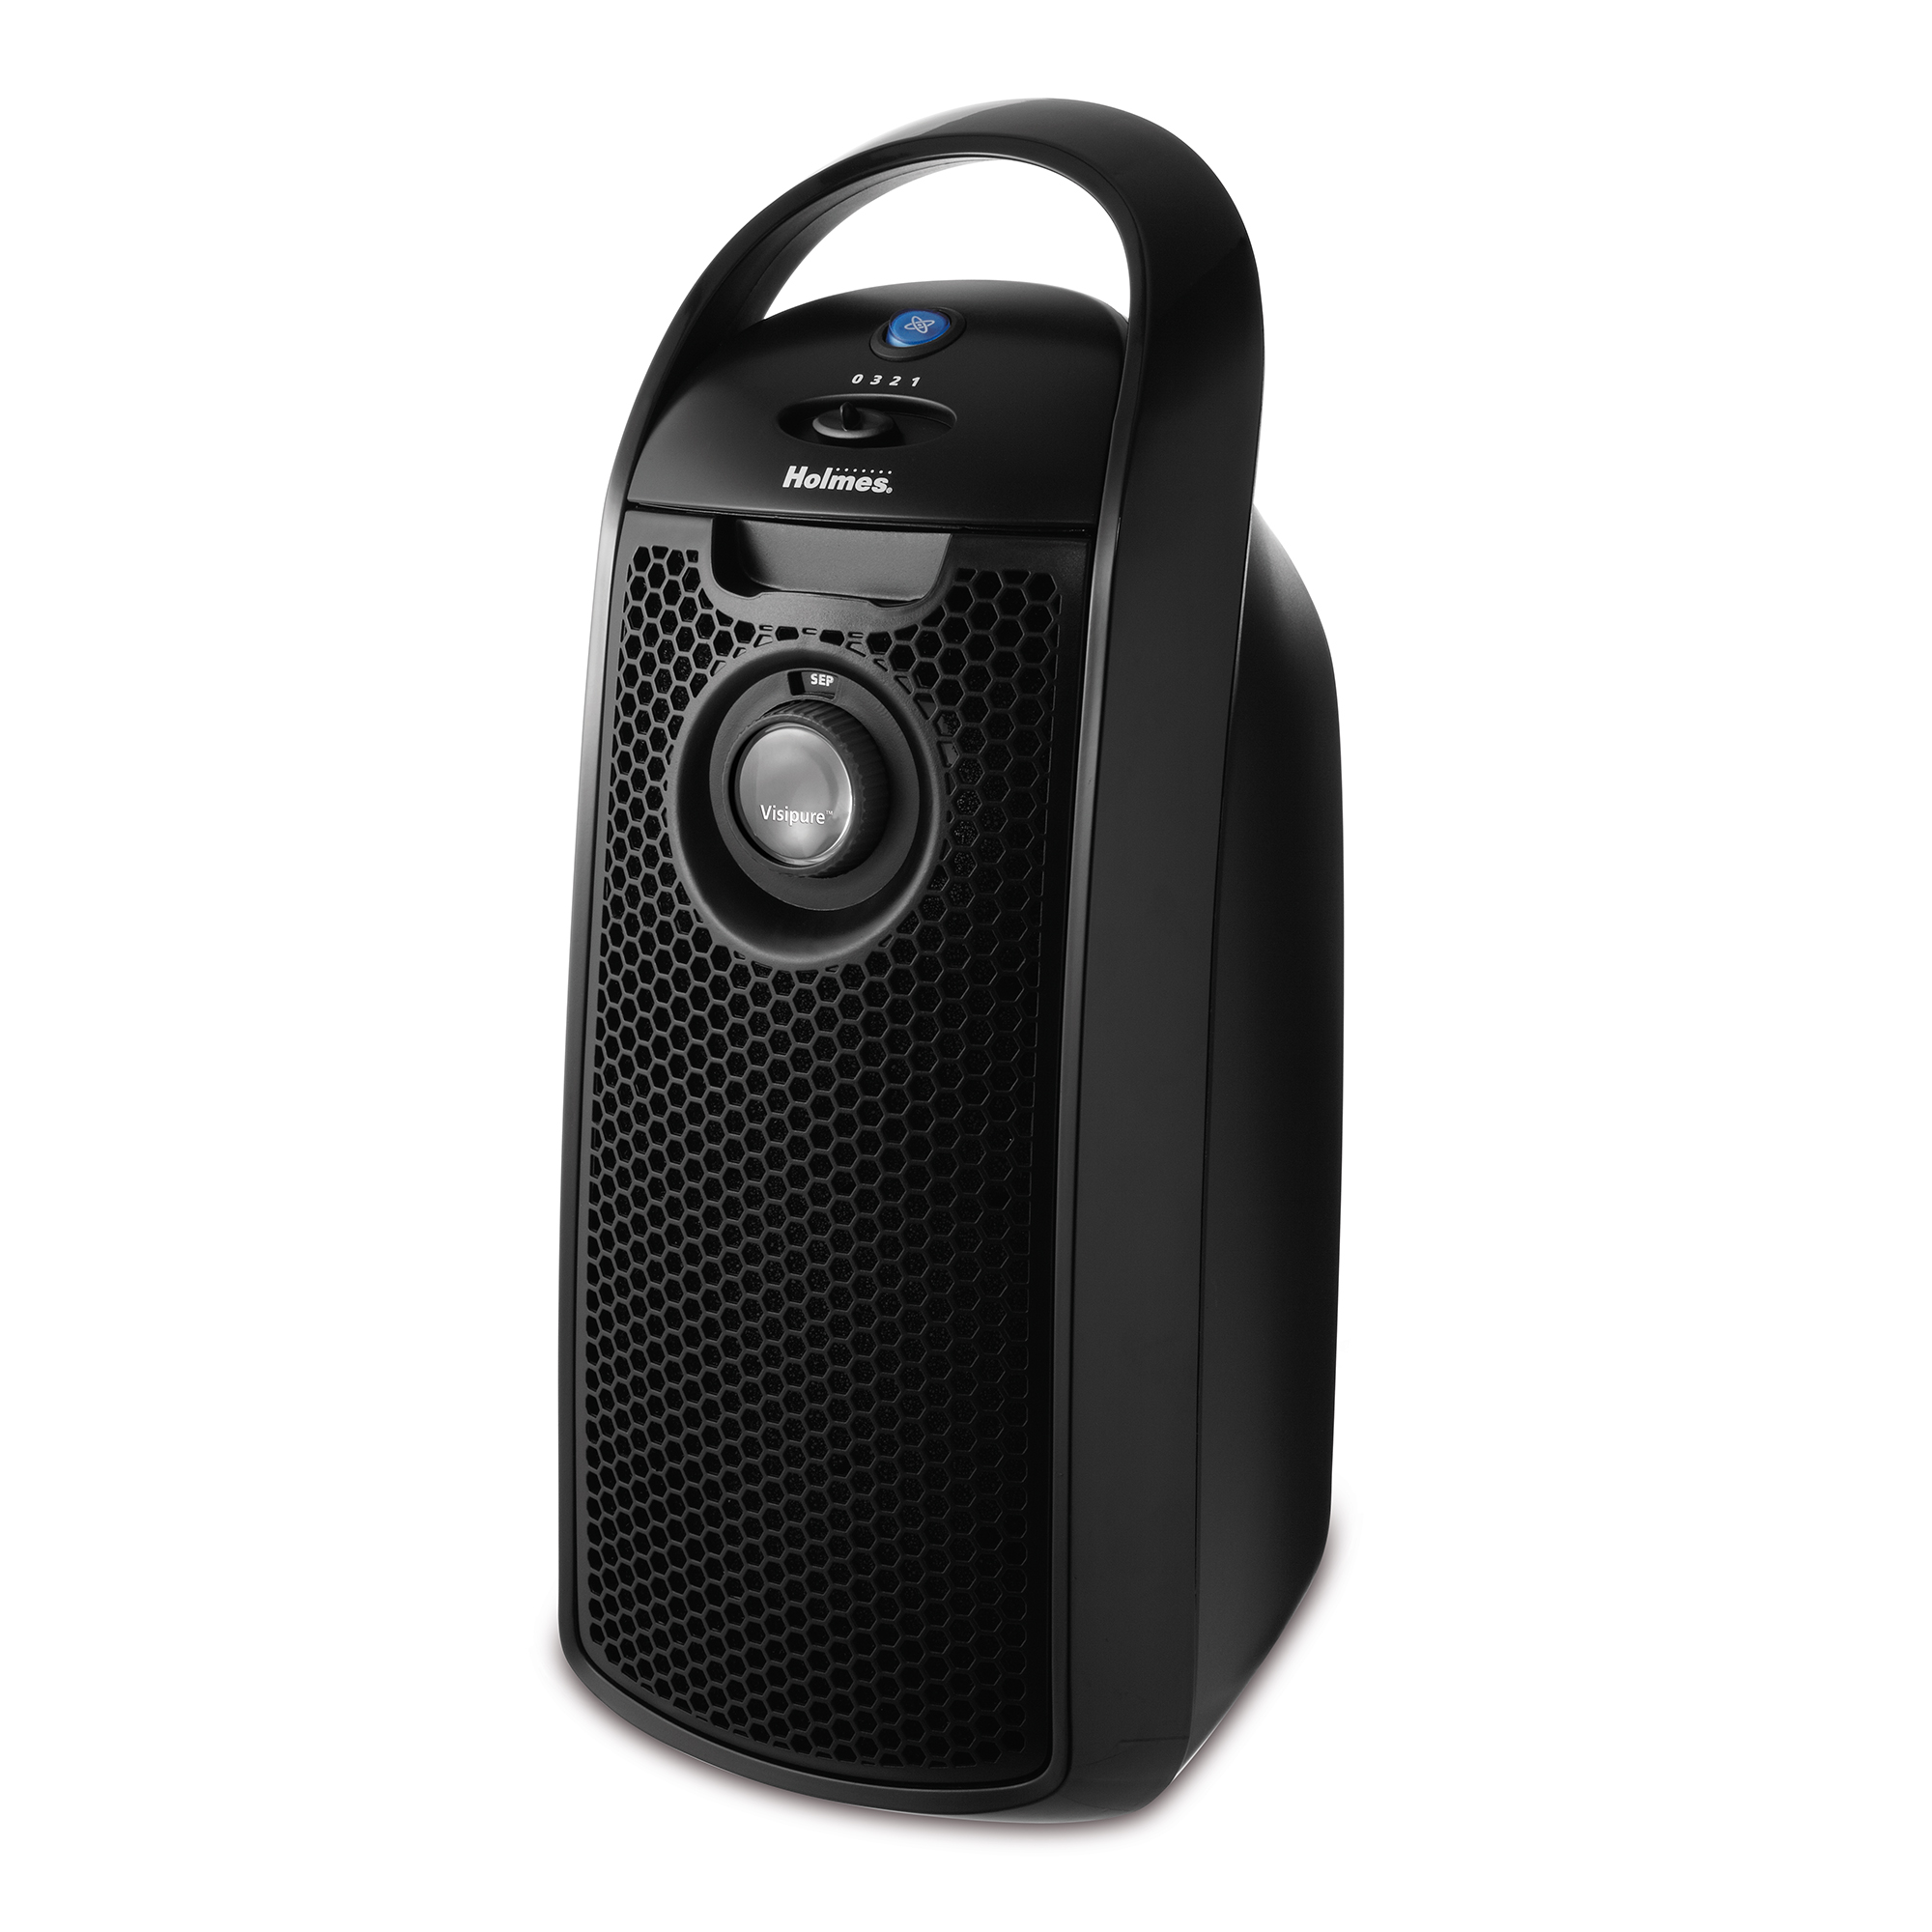 Holmes Mini-Tower HEPA-Type Air Purifier with Visipure Filter Viewing Window, 138 Square Foot Room Capacity, Three Speed, Black (HAP9415-UA)